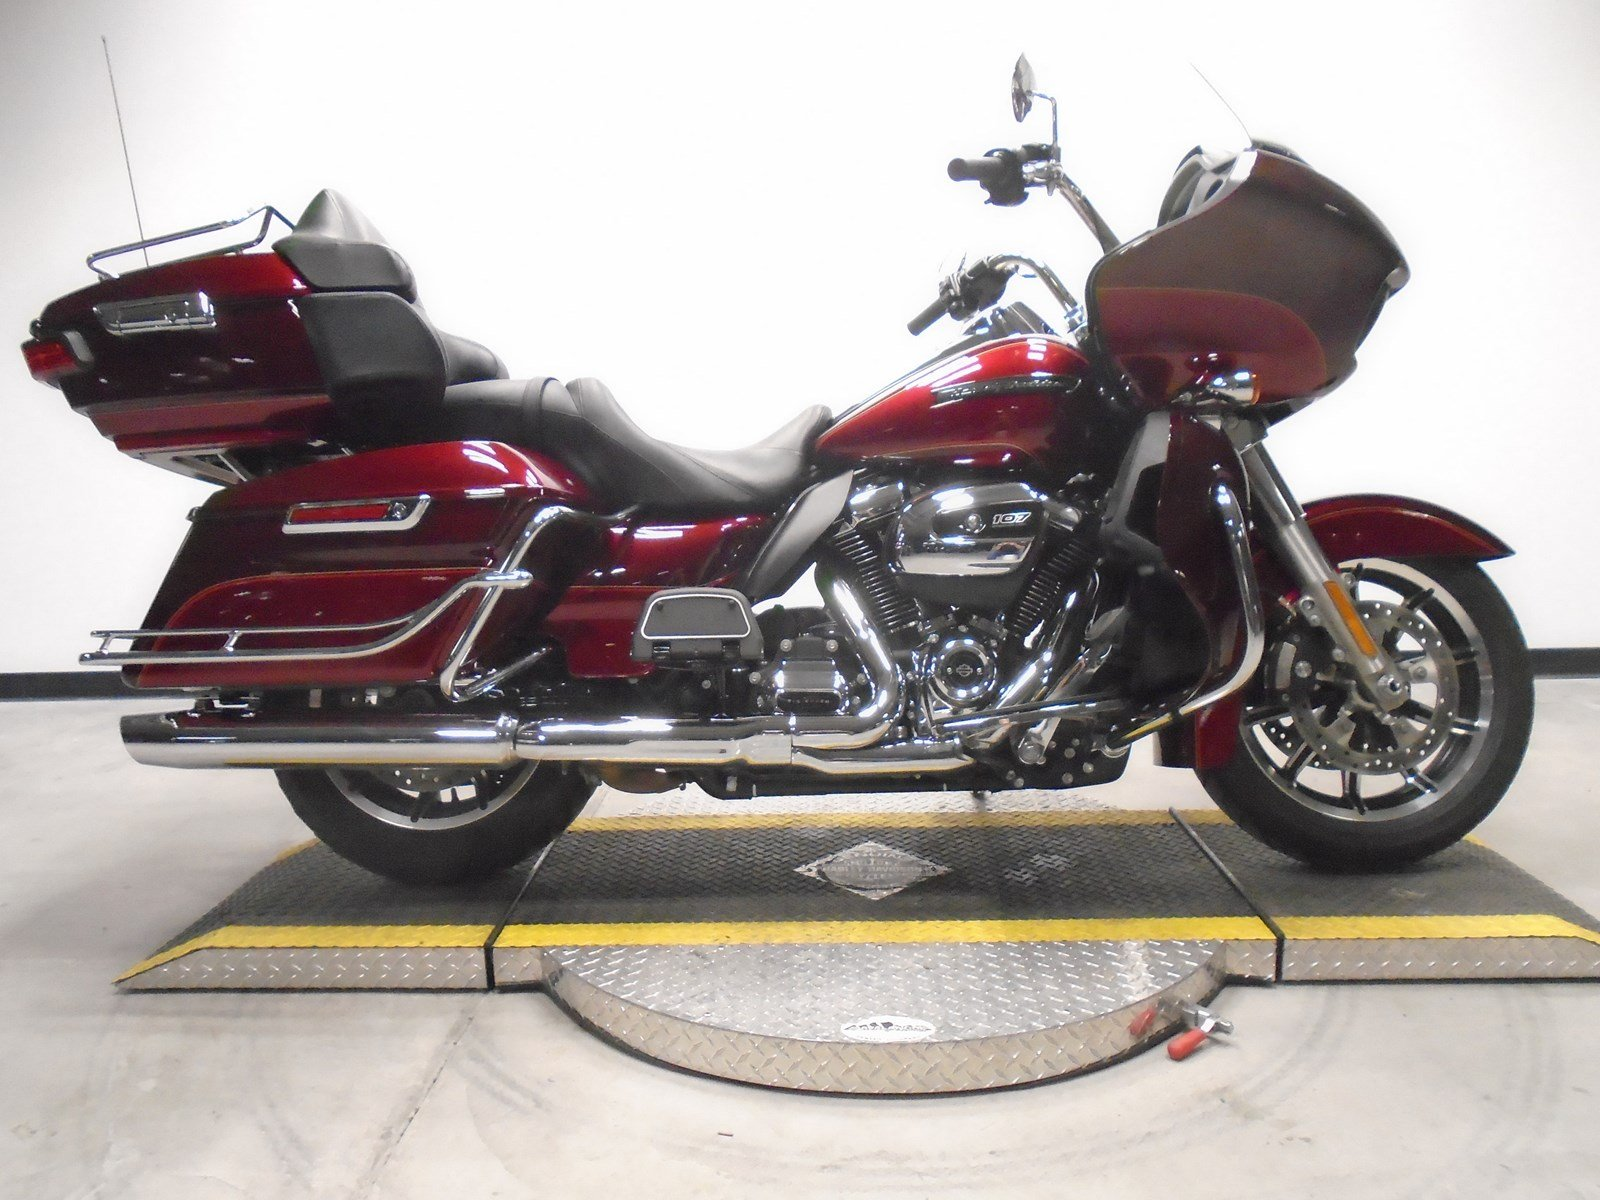 Pre-Owned 2017 Harley-Davidson Road Glide Ultra FLTRU